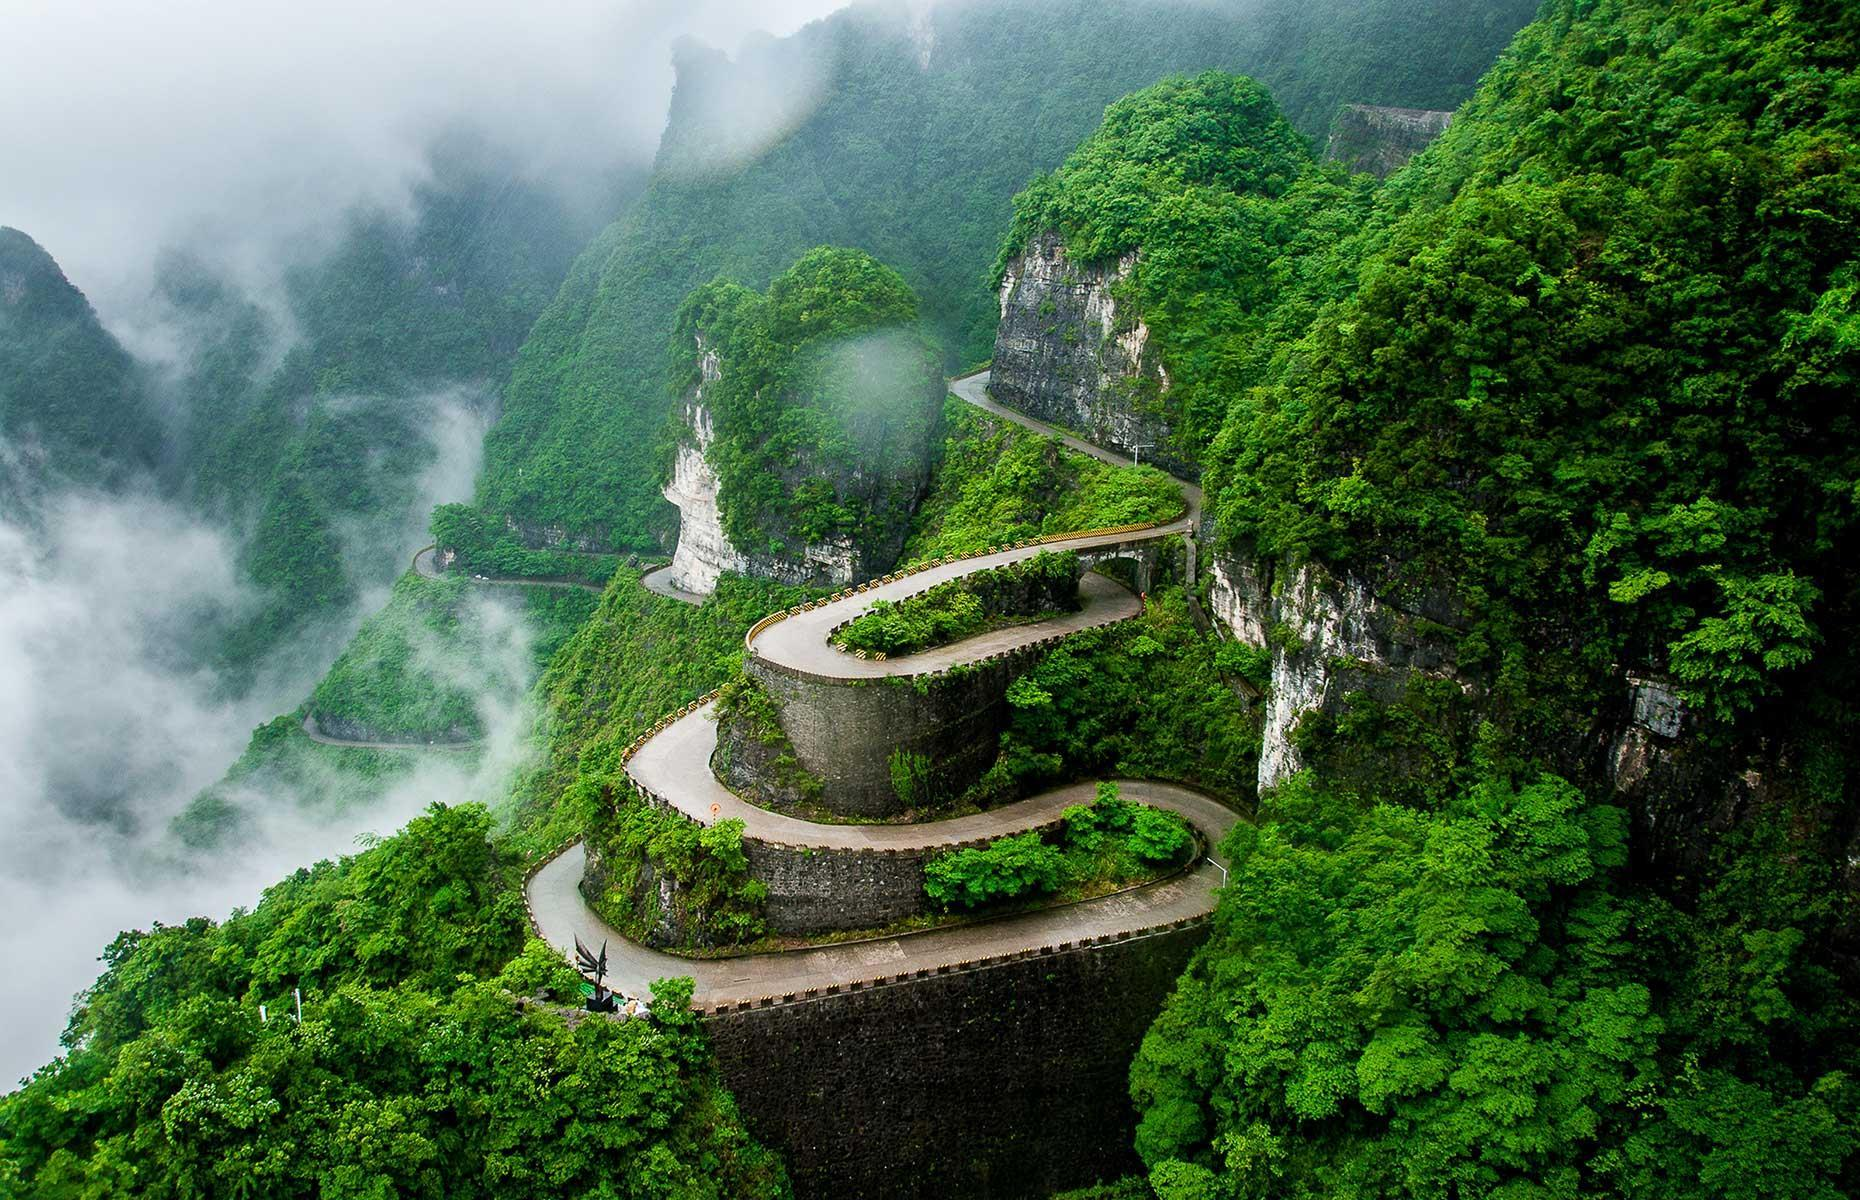 Slide 32 of 44: This spectacularly steep and winding road can be found in the Tianmen Mountain National Park in China's Hunan Province. It curls up the mountain for seven miles (11km) with 99 nerve-wracking bends and precipitous drops. The road ends at a natural gap near the mountain's peak. Although, you'll need to walk 999 steps after you've parked to reach the sacred crevice, which is known as Heaven's Door.